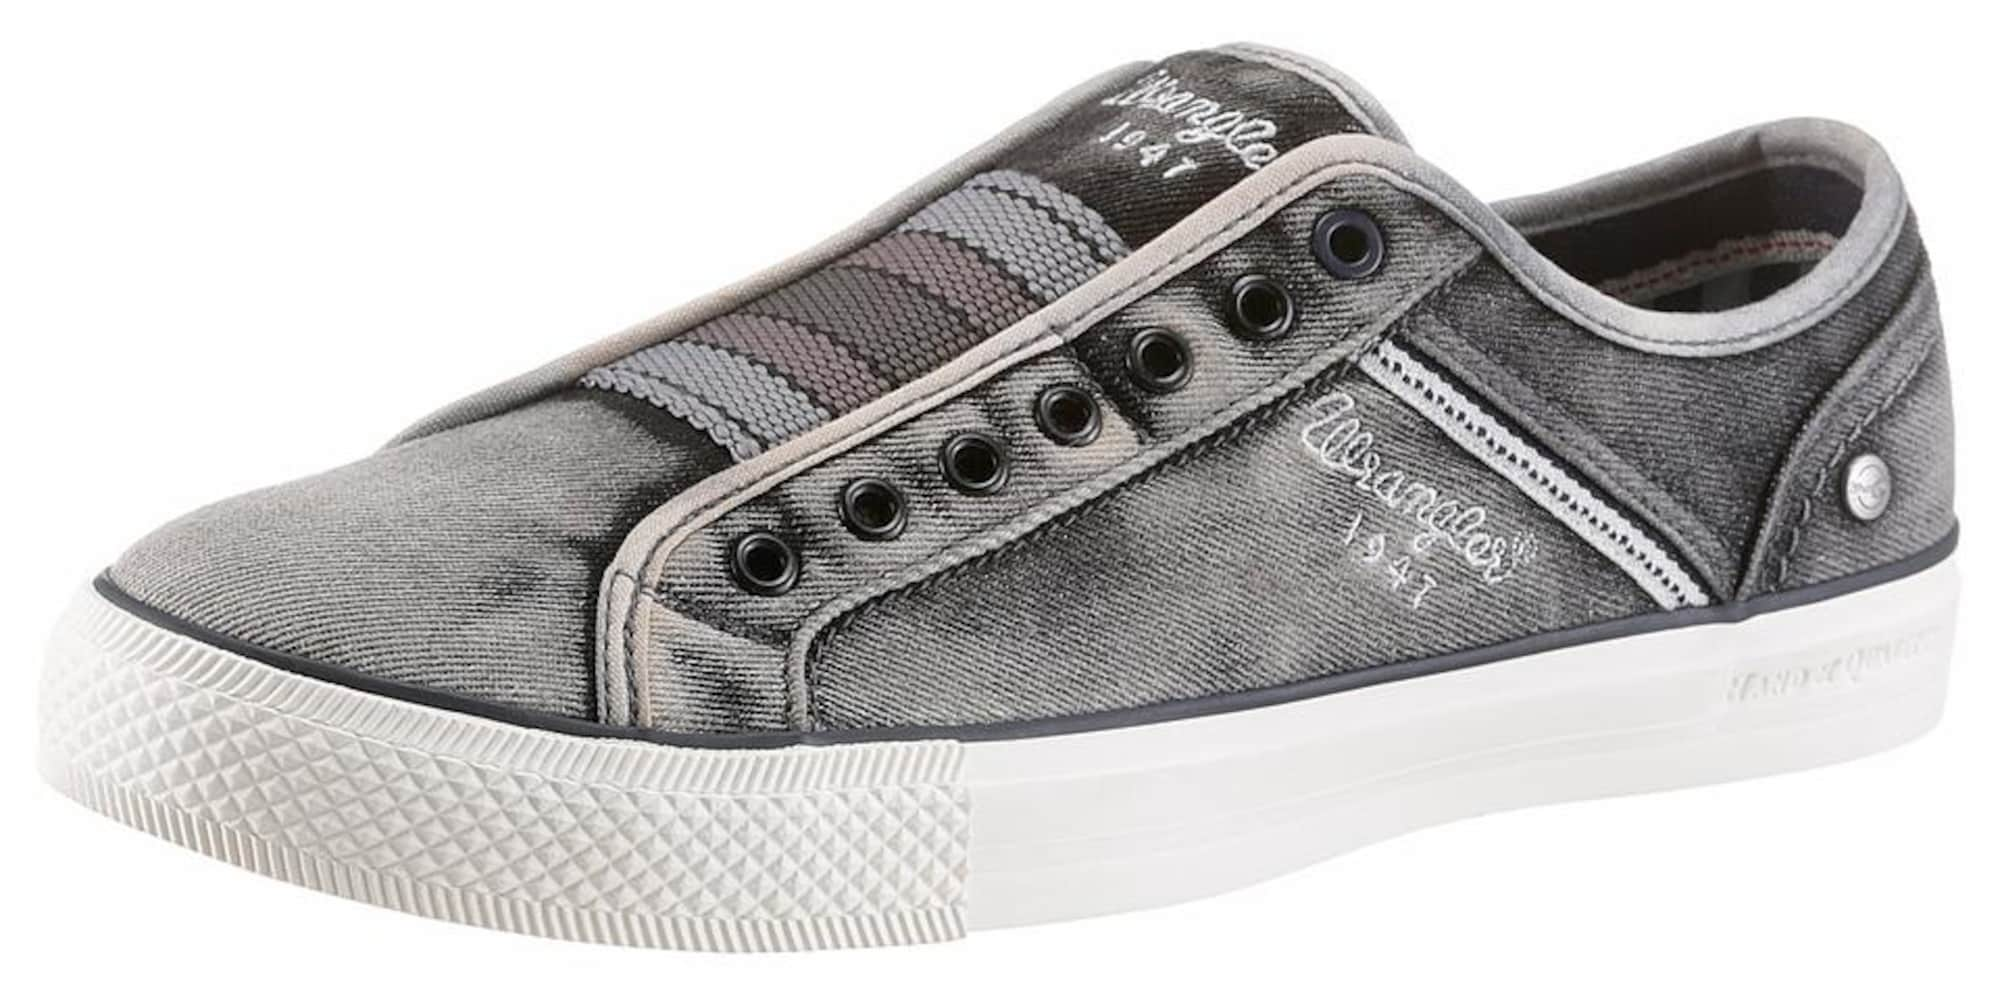 WRANGLER Heren Sneakers laag Starry Slip On donkergrijs